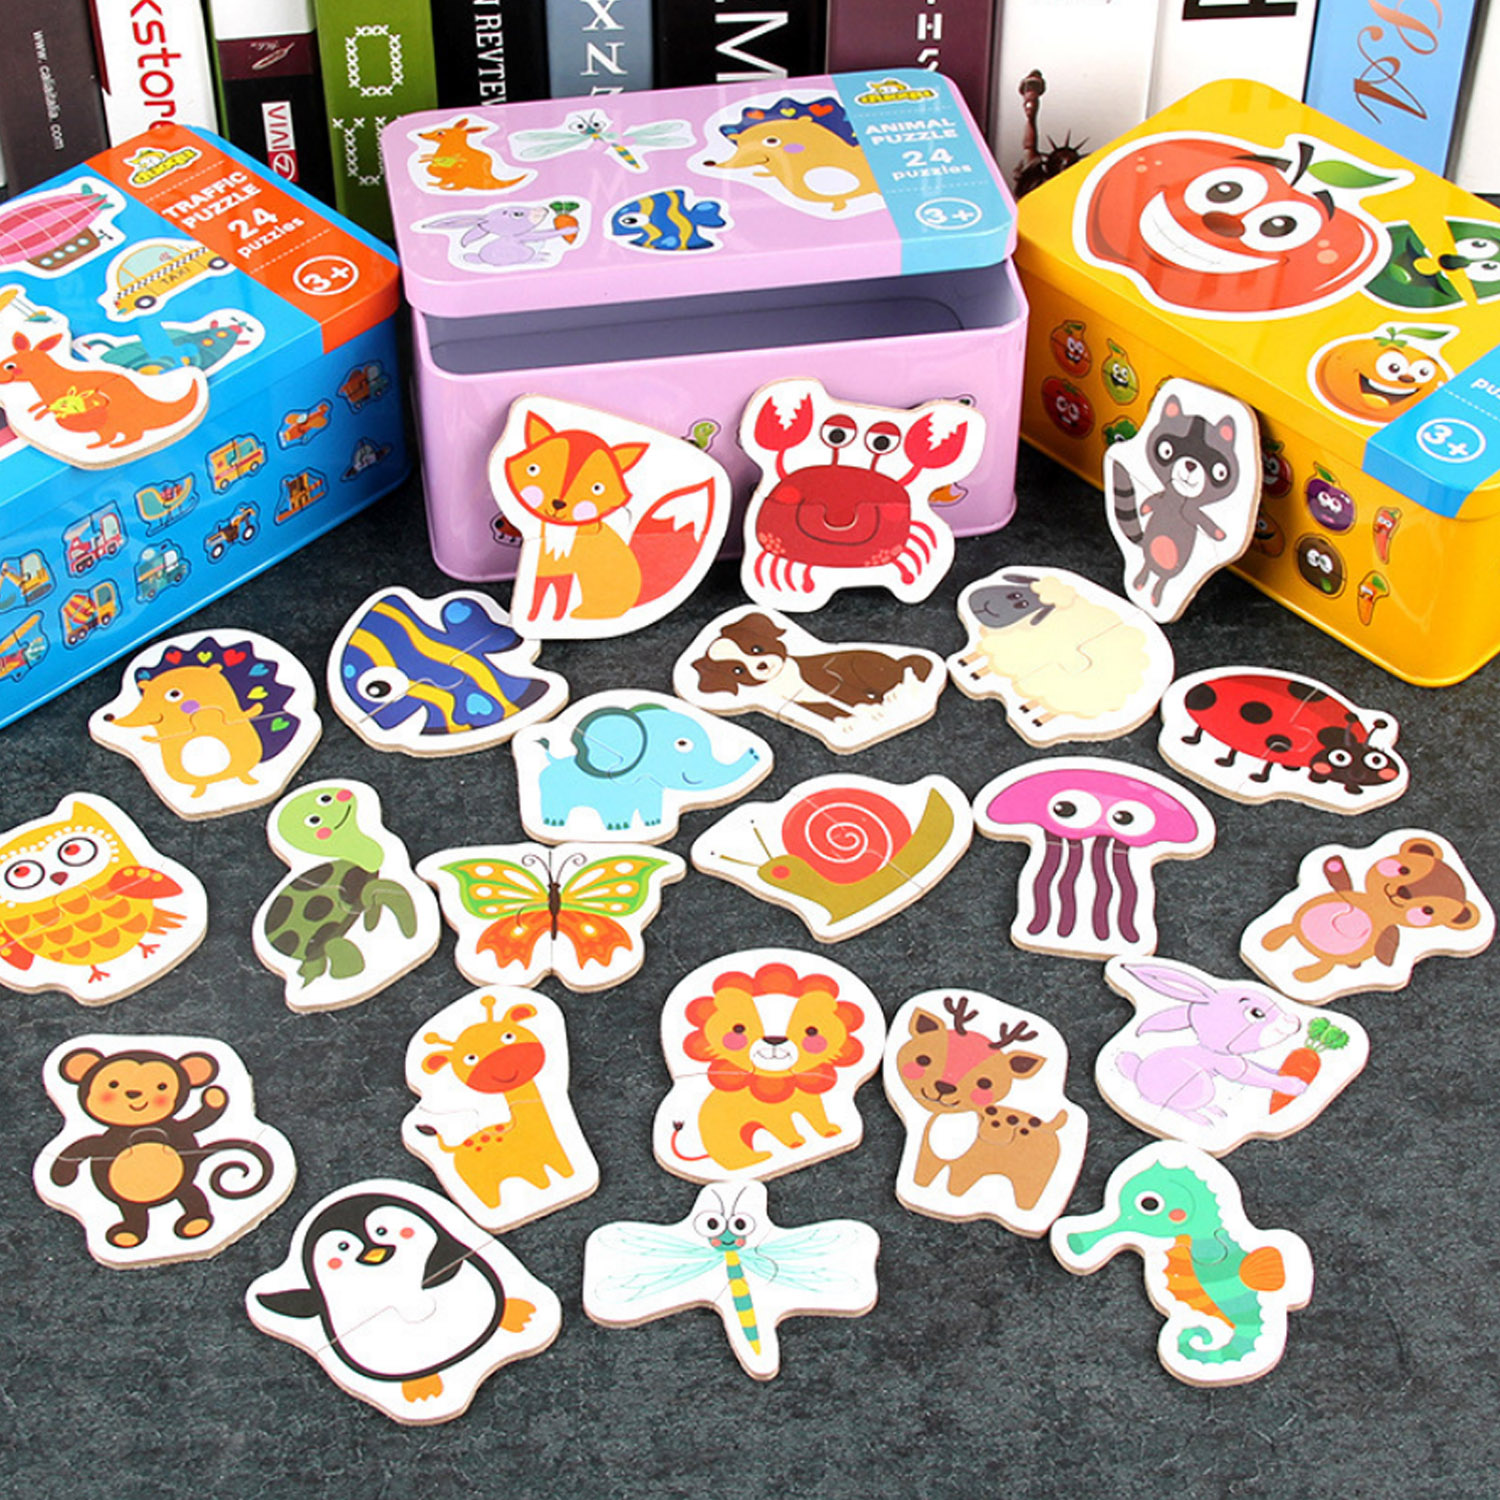 Kids Early Educational Toys Wooden Puzzle Game Animal Pattern Shape Pattern Matching Learning Cognition Card With Storage Box